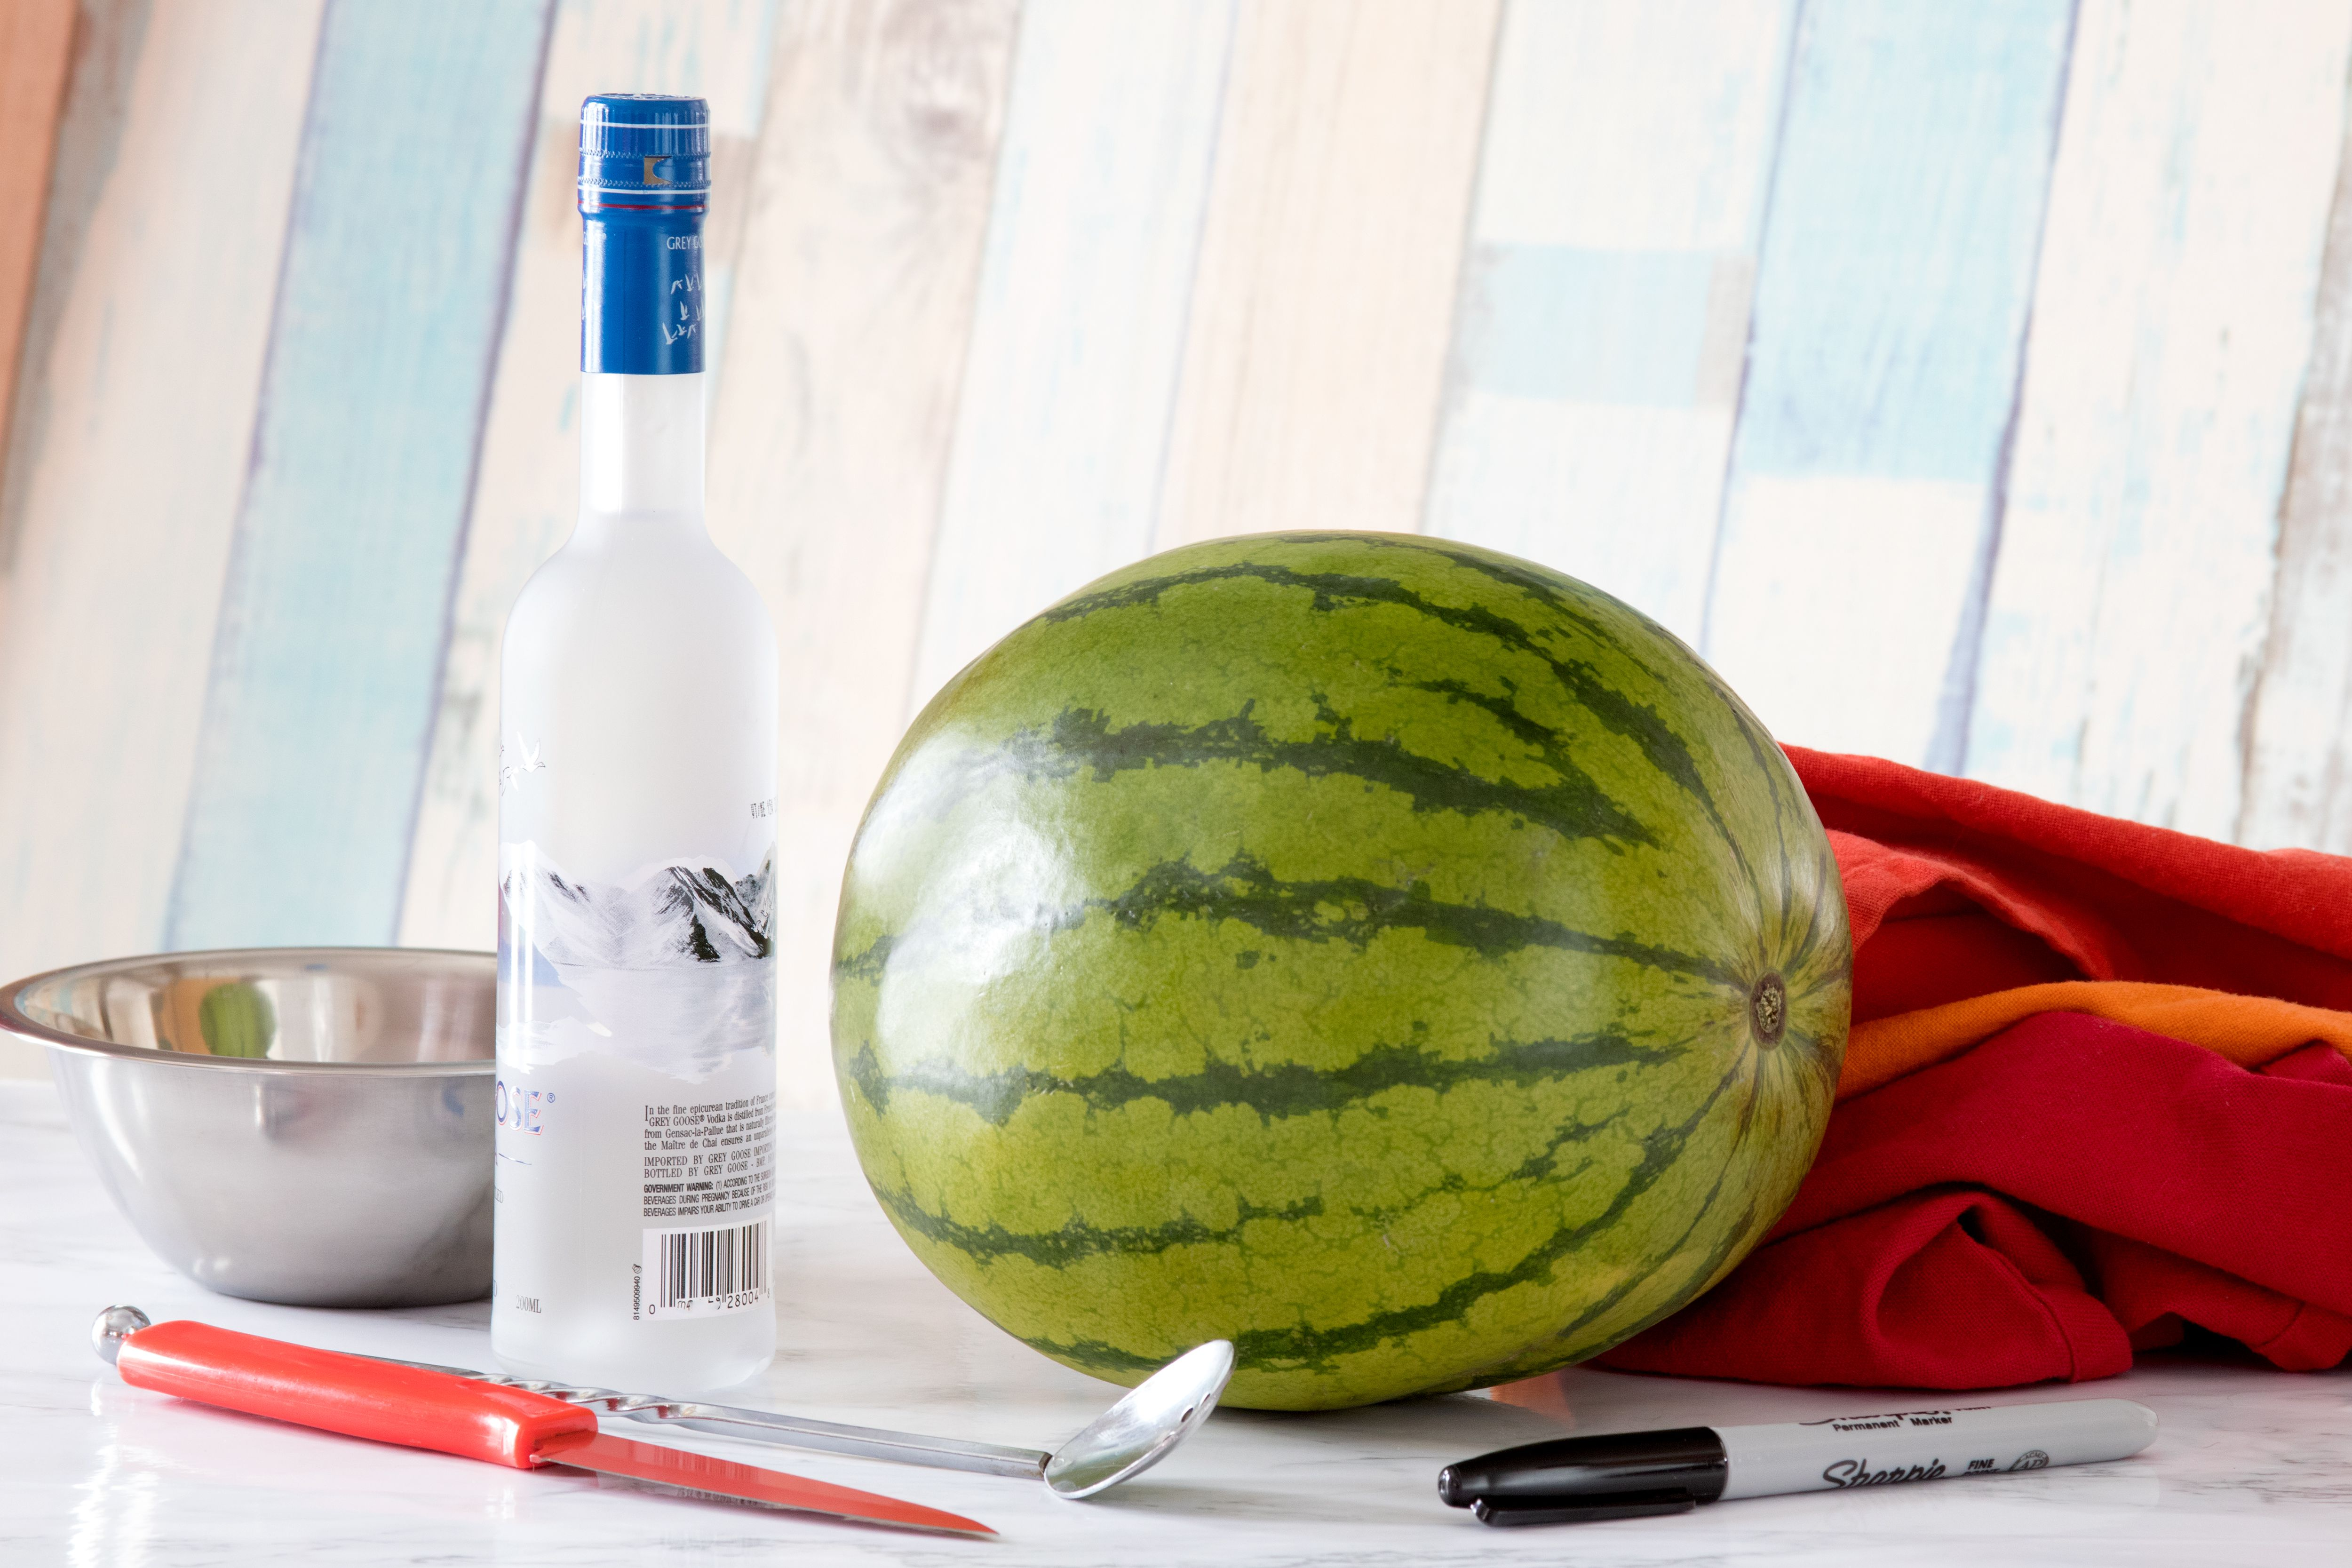 Ingredients and tools for making vodka-spiked watermelon